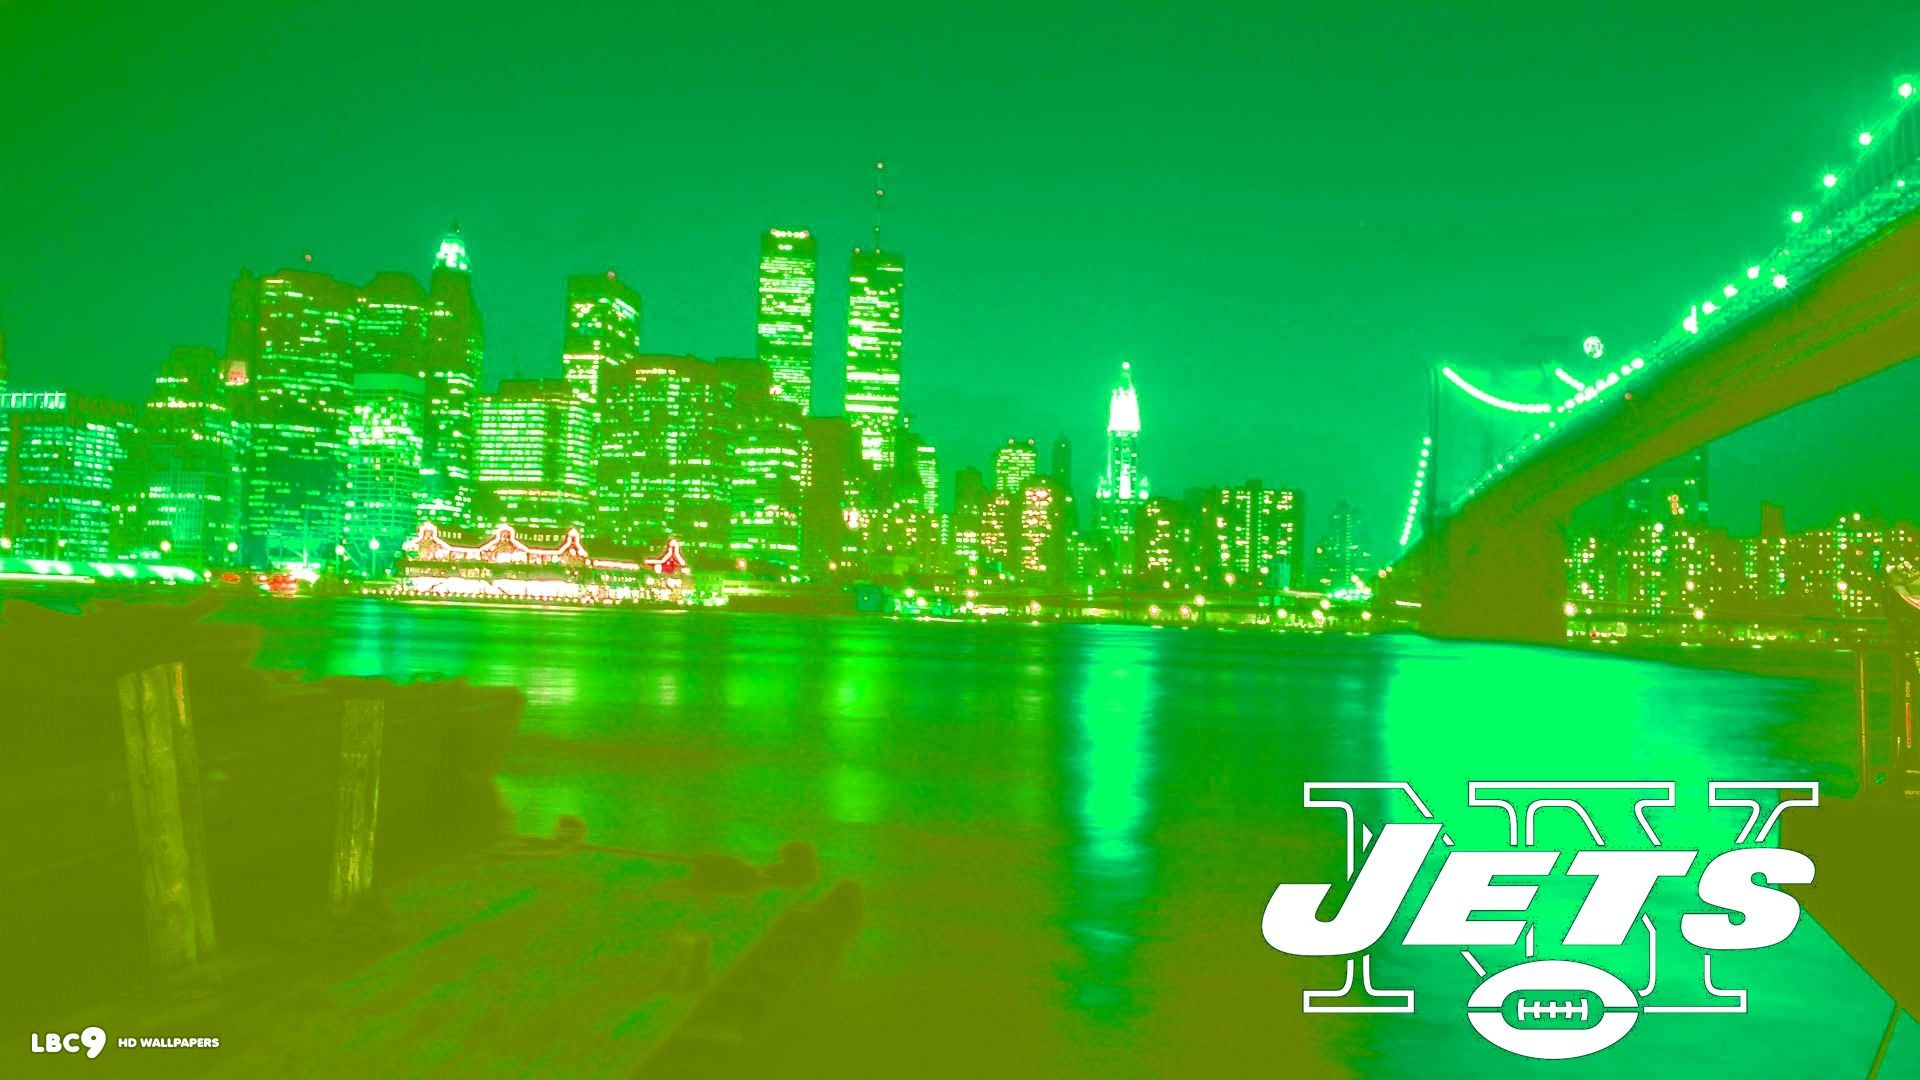 New York Jets Hd K Schedule Wallpaper 640 640 Ny Jets Wallpapers 42 Wallpapers Adorable Wallpapers